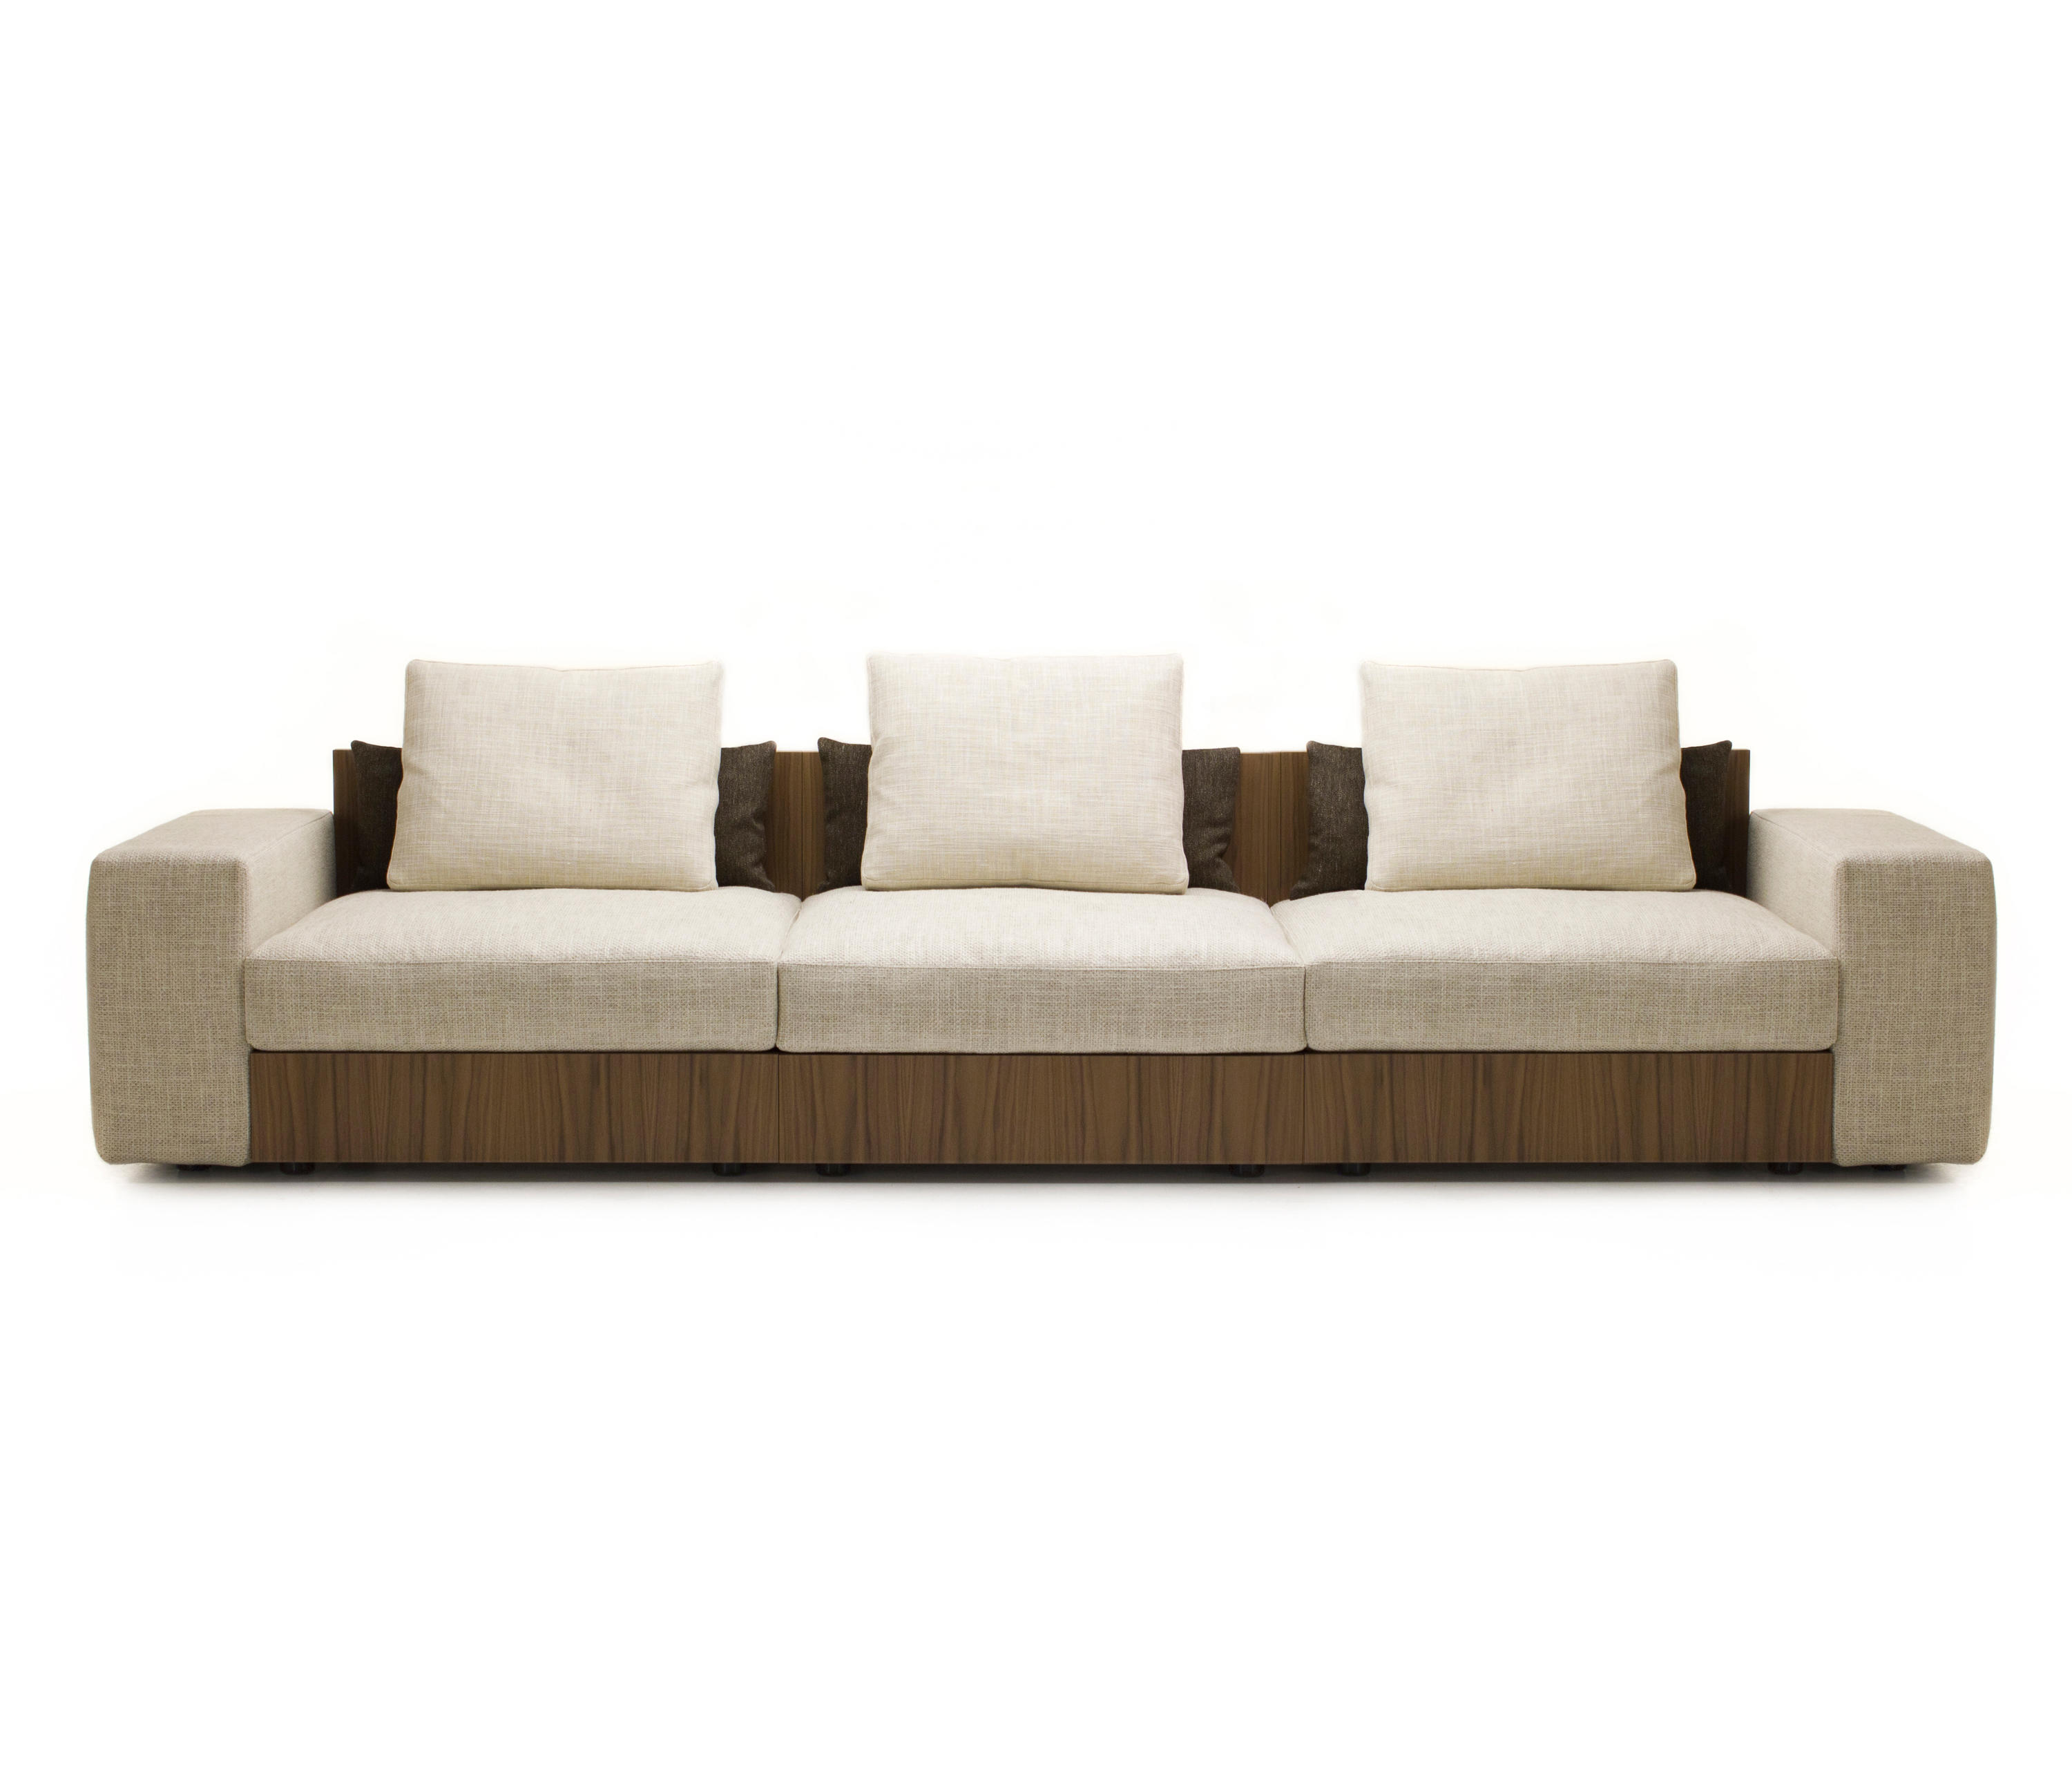 Sofa So Wood 3 Seater Sofa Lounge Sofas From Mussi Italy Architonic